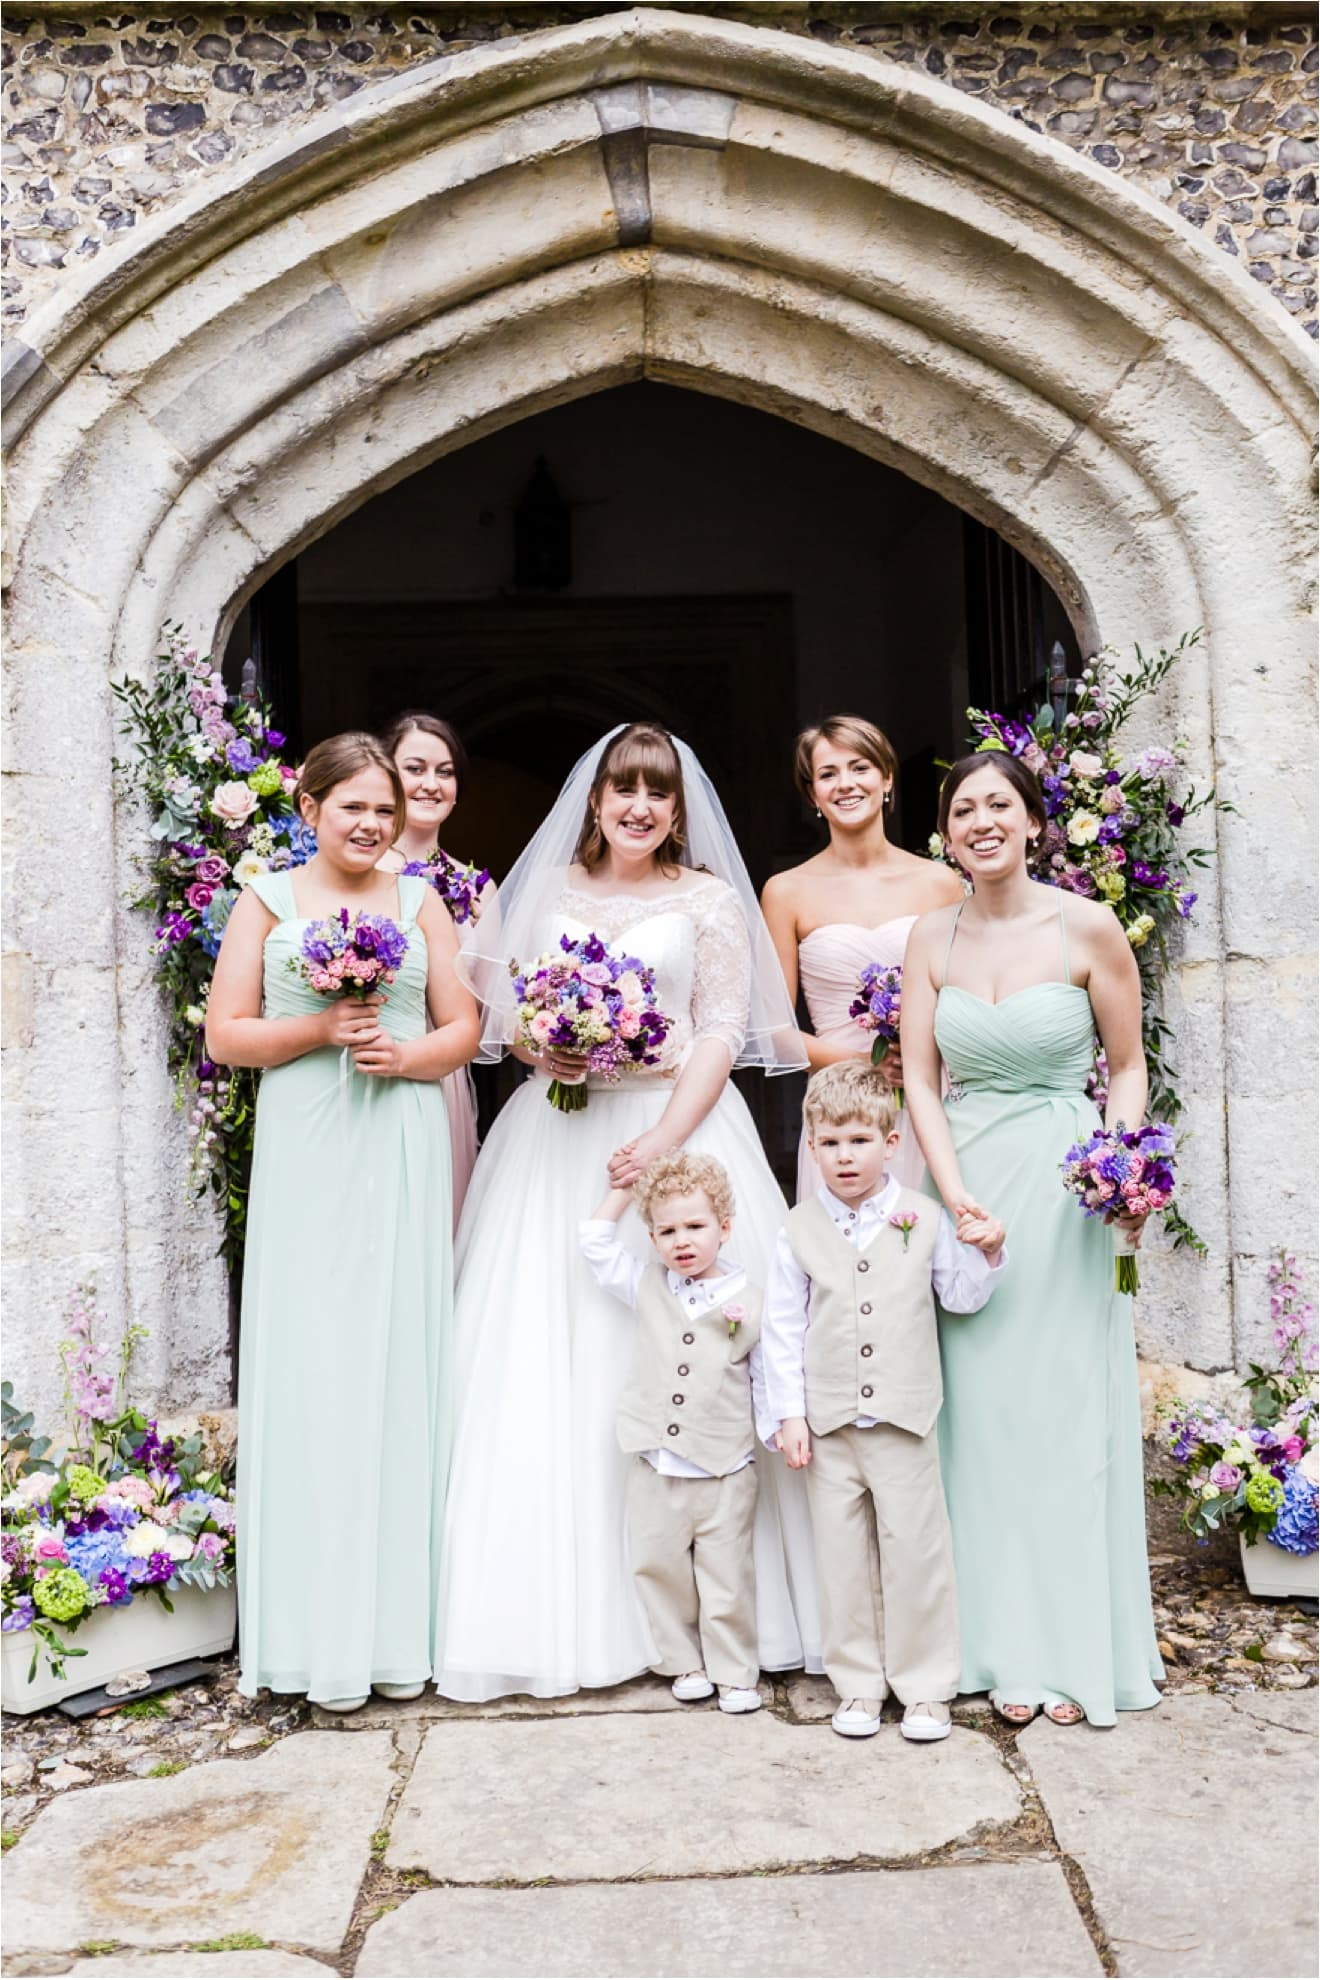 wedding-at-hambledon-vineyard-eddie-judd-photographer0039